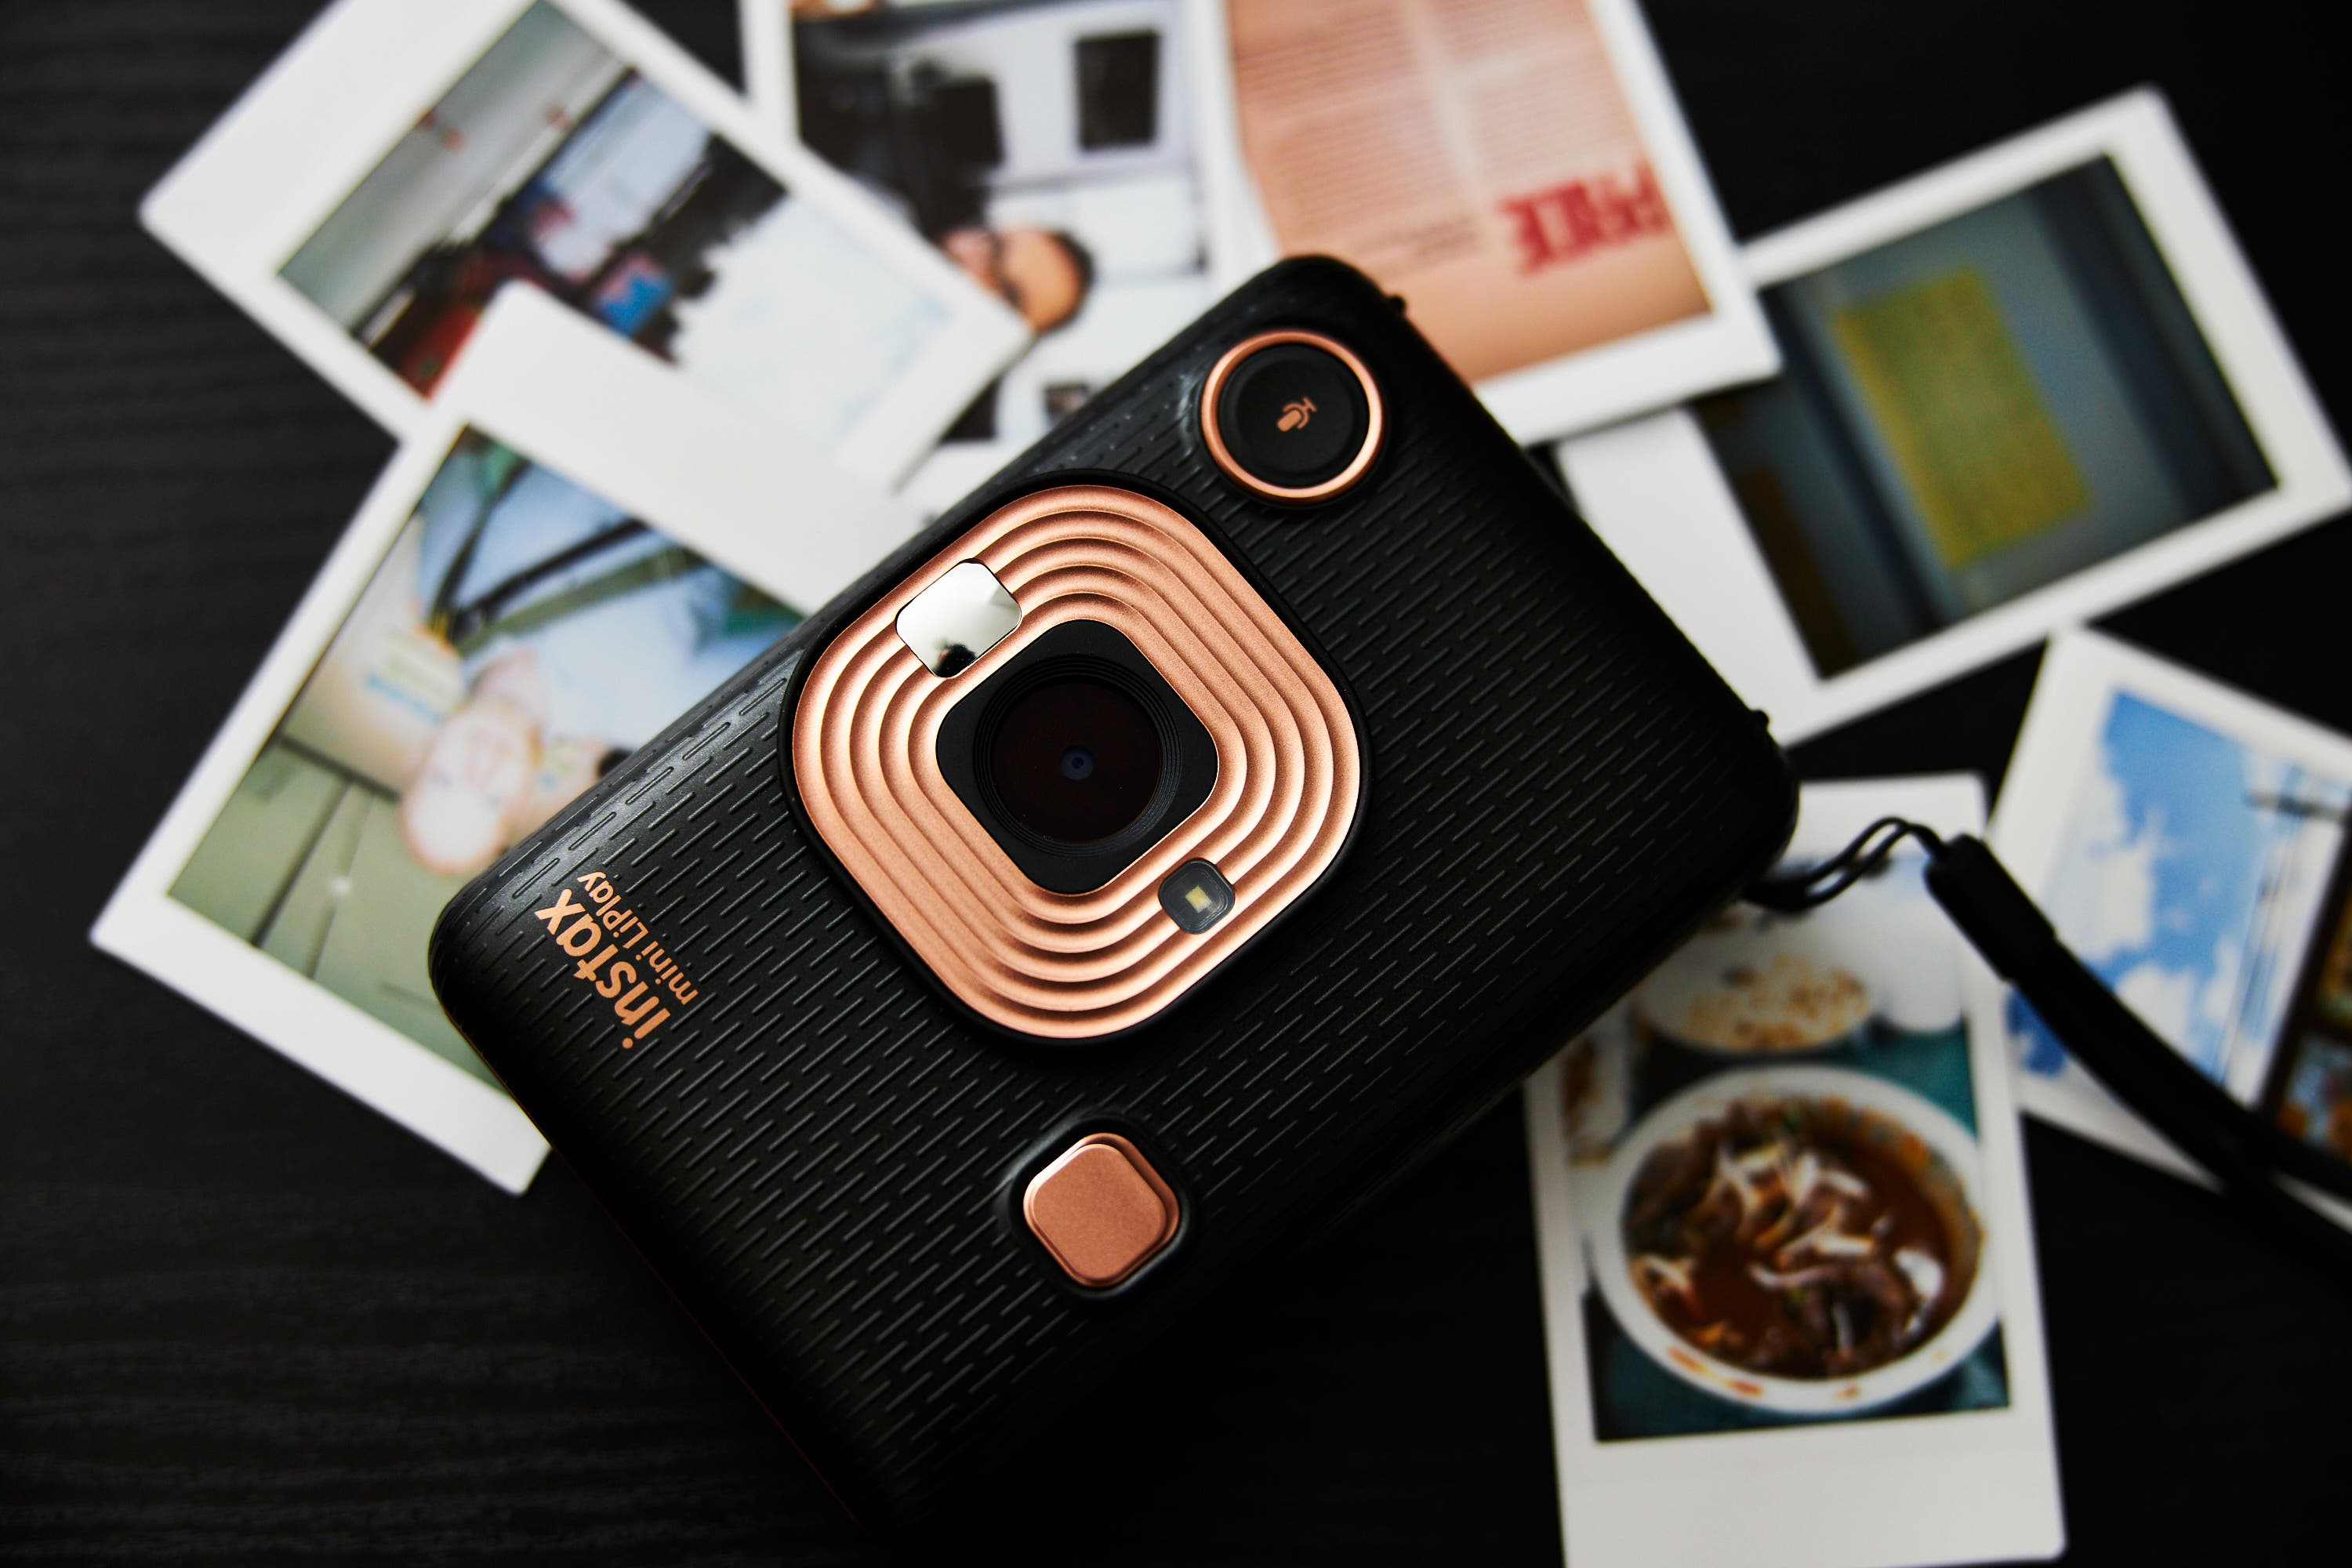 Review: Fujifilm Instax Mini LiPlay (My New Favorite Instax Camera)